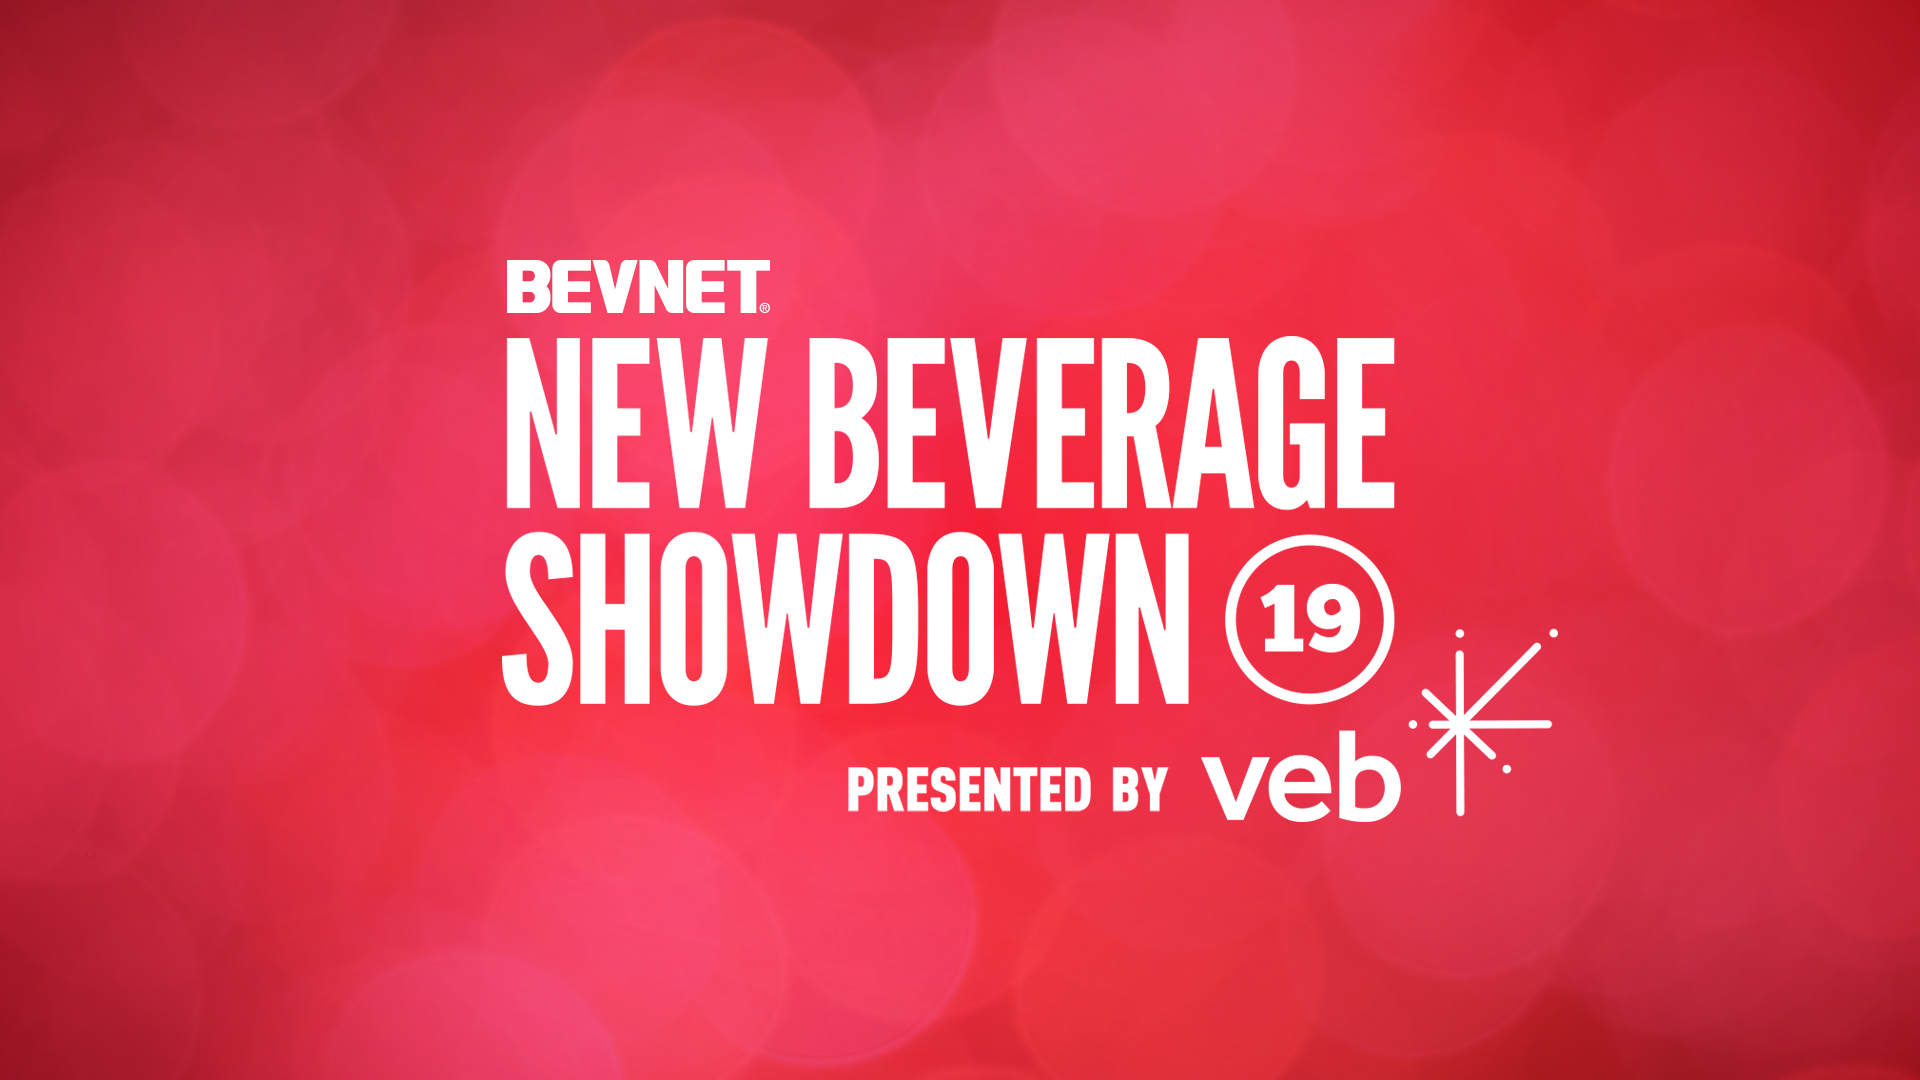 New Beverage Showdown 19